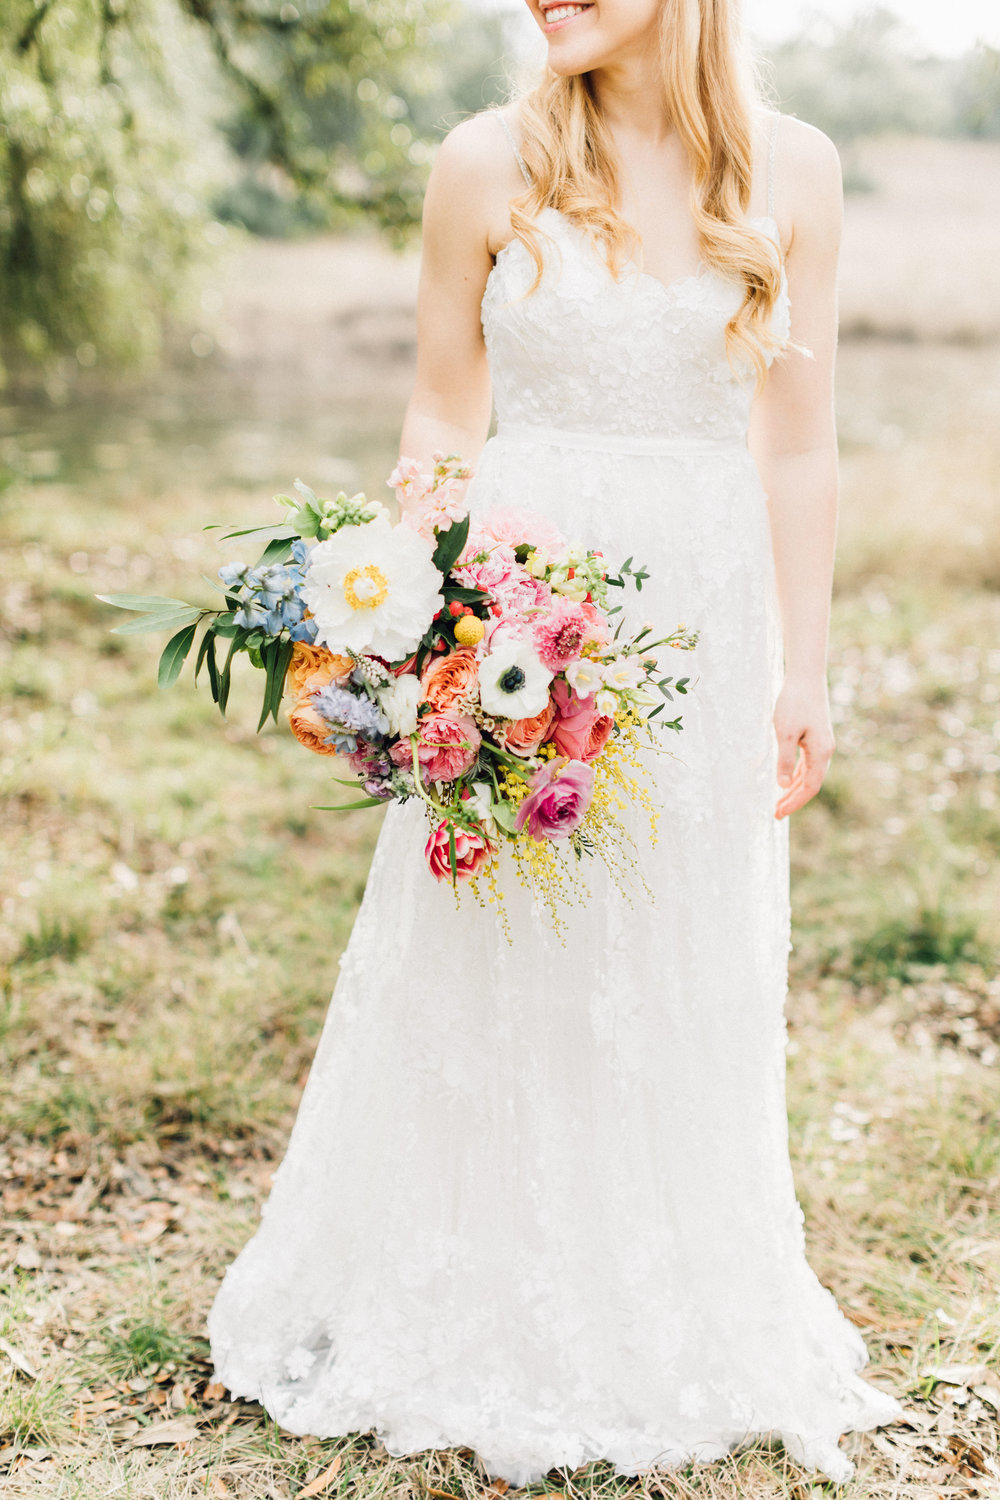 Bohemian style, colorful bridal bouquet with pink, yellow, coral peonies, poppies, anemone, spray roses, ranunculus at Addison Grove. Petal Pushers floral event design studio located in Dripping Springs, Texas.